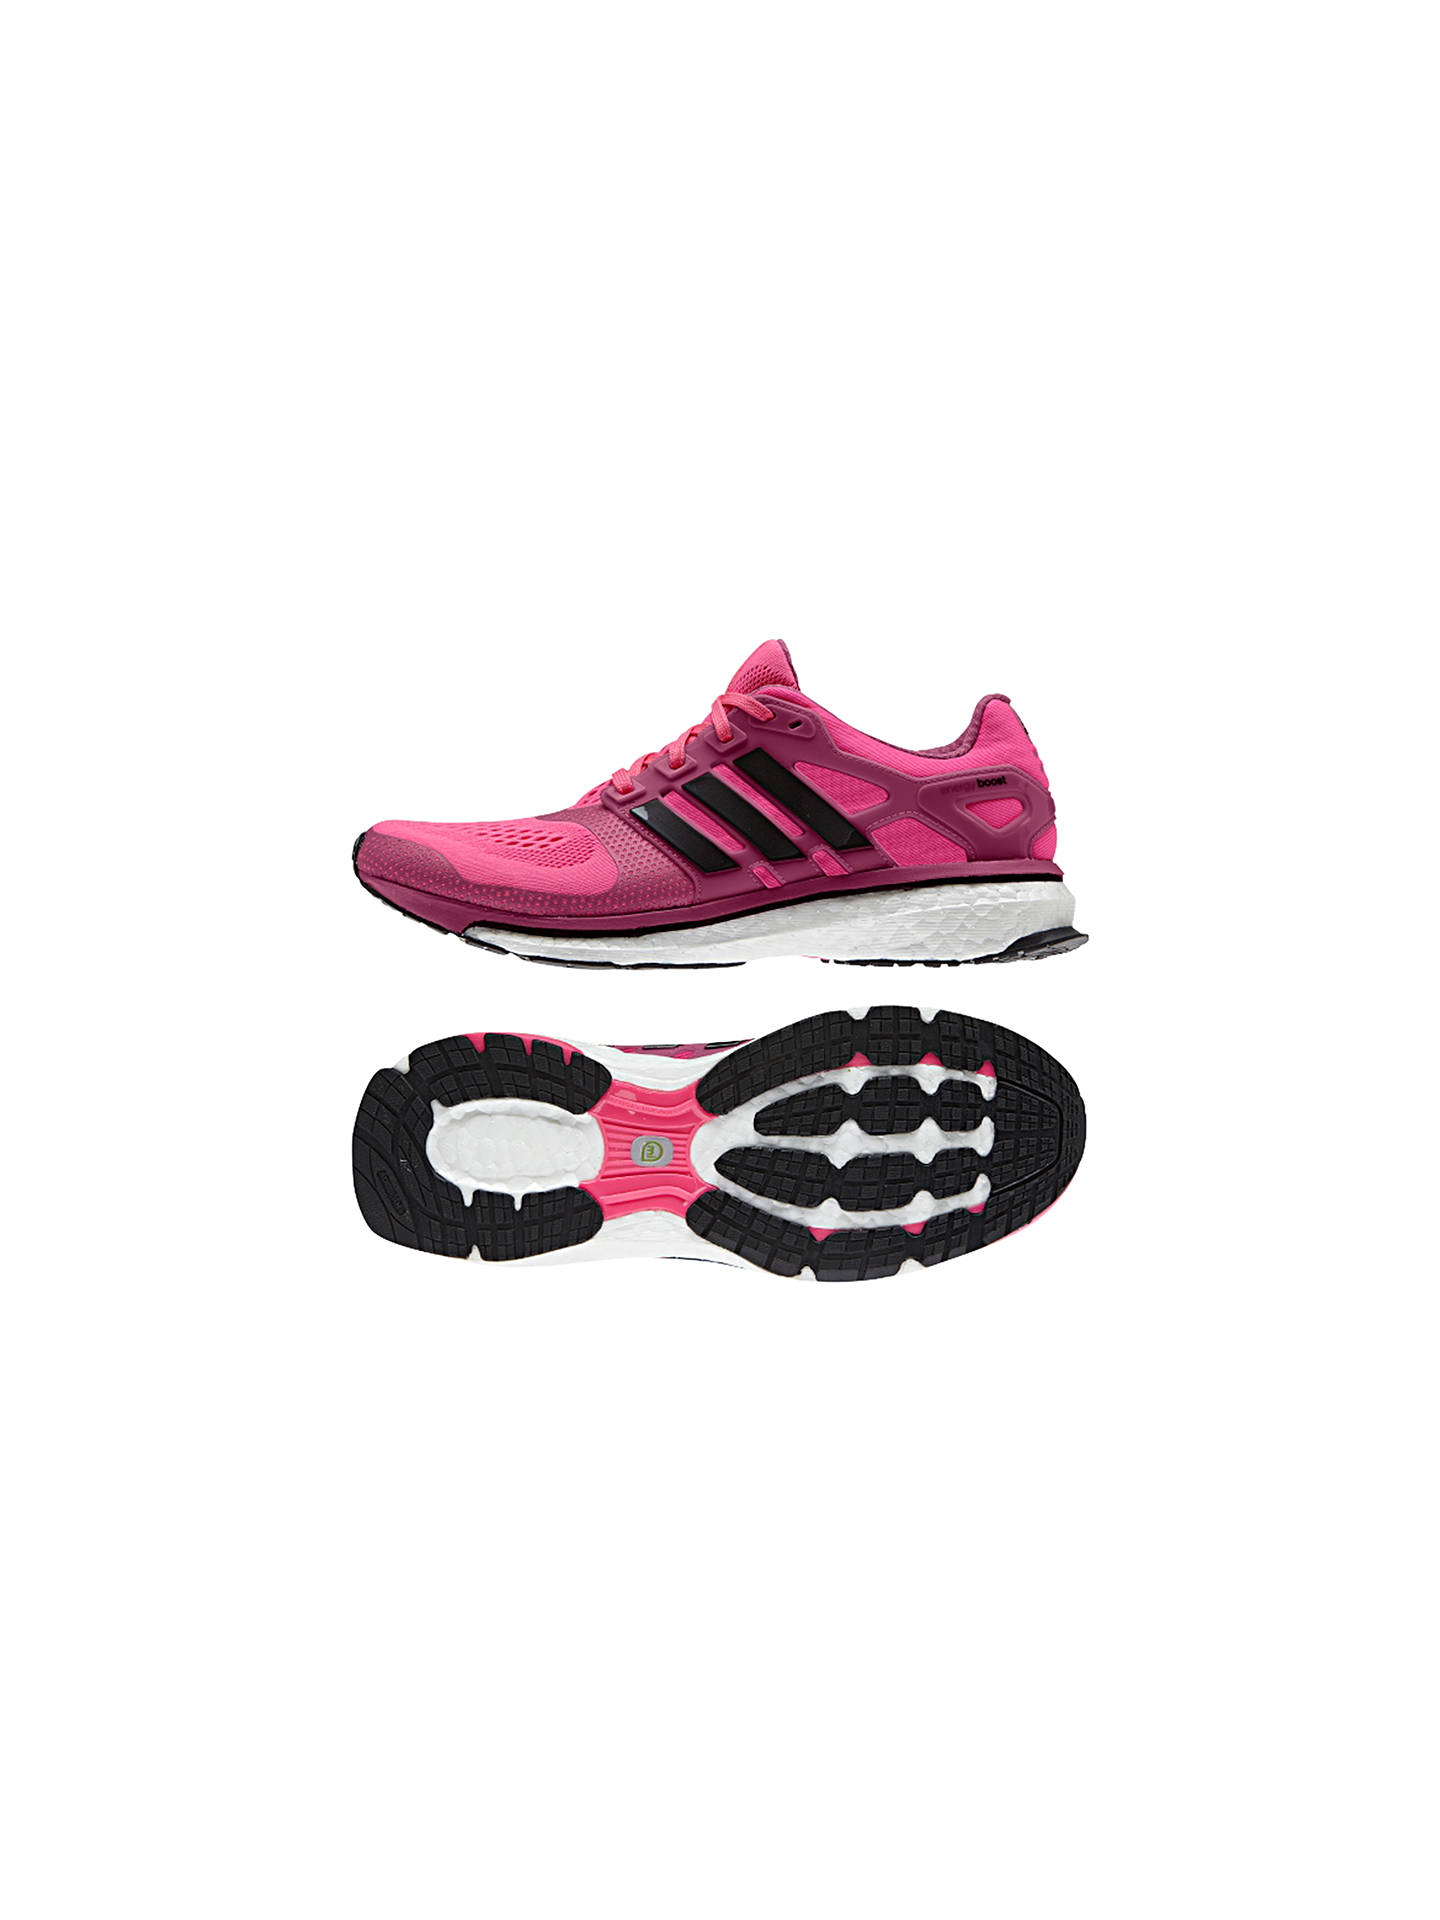 e87295457aff0 ... greece buyadidas energy boost 2 esm womens running shoes pink 4 online  at johnlewis. a2f27